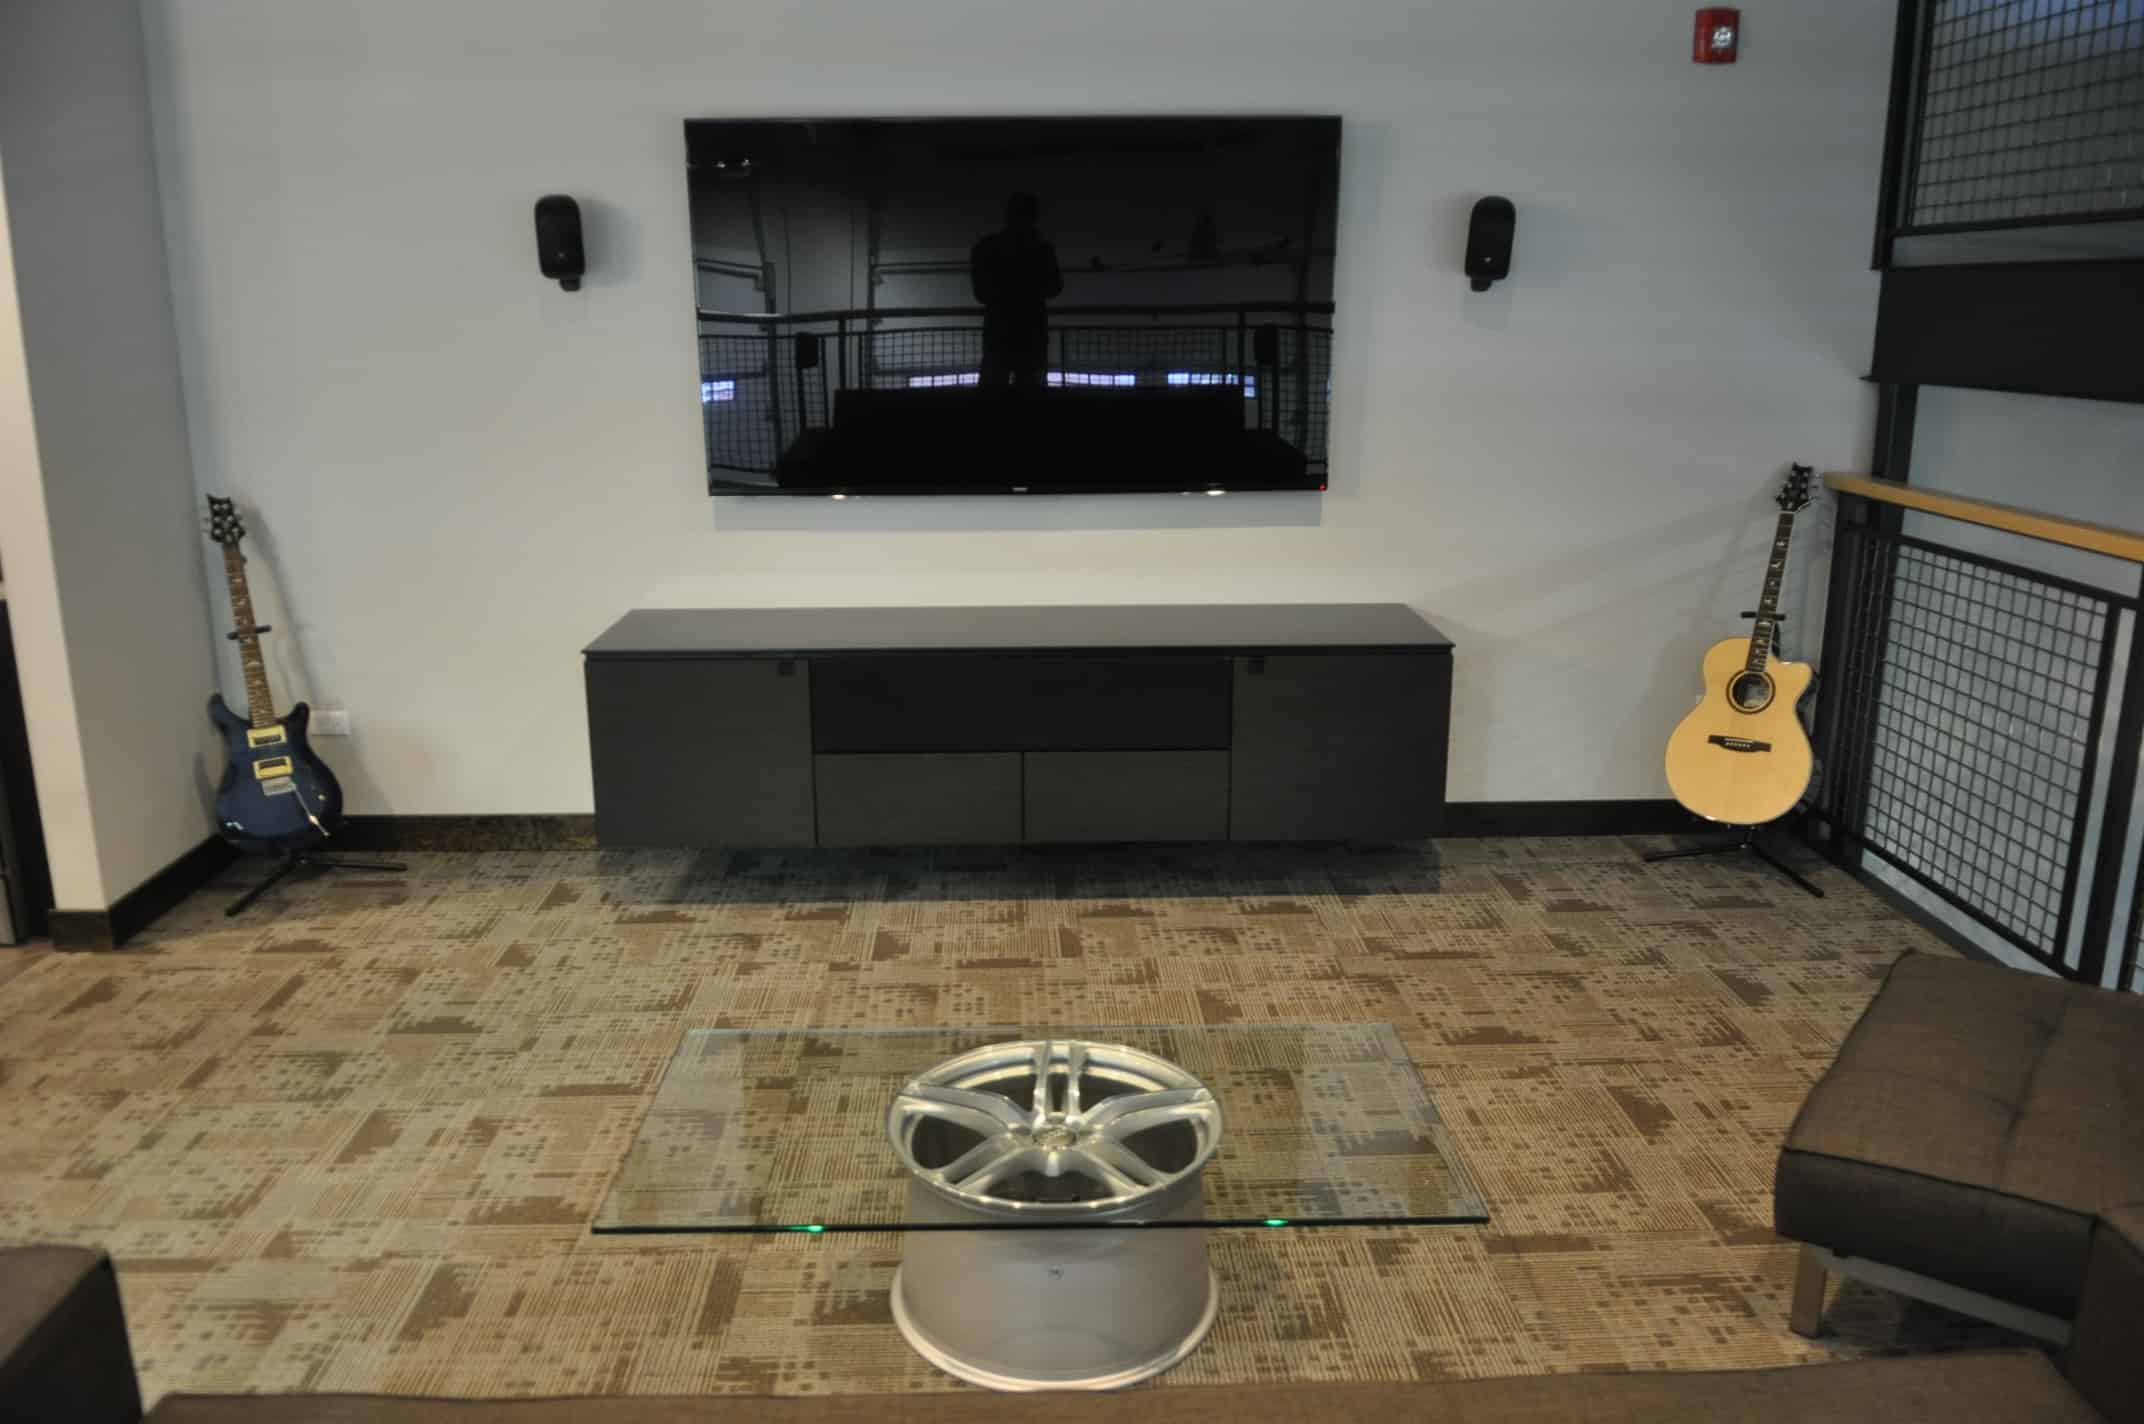 11 Jun Iron Gate Motor Condo Flat Screen Television Coffee Table Wheel  Second Floor Finished Product